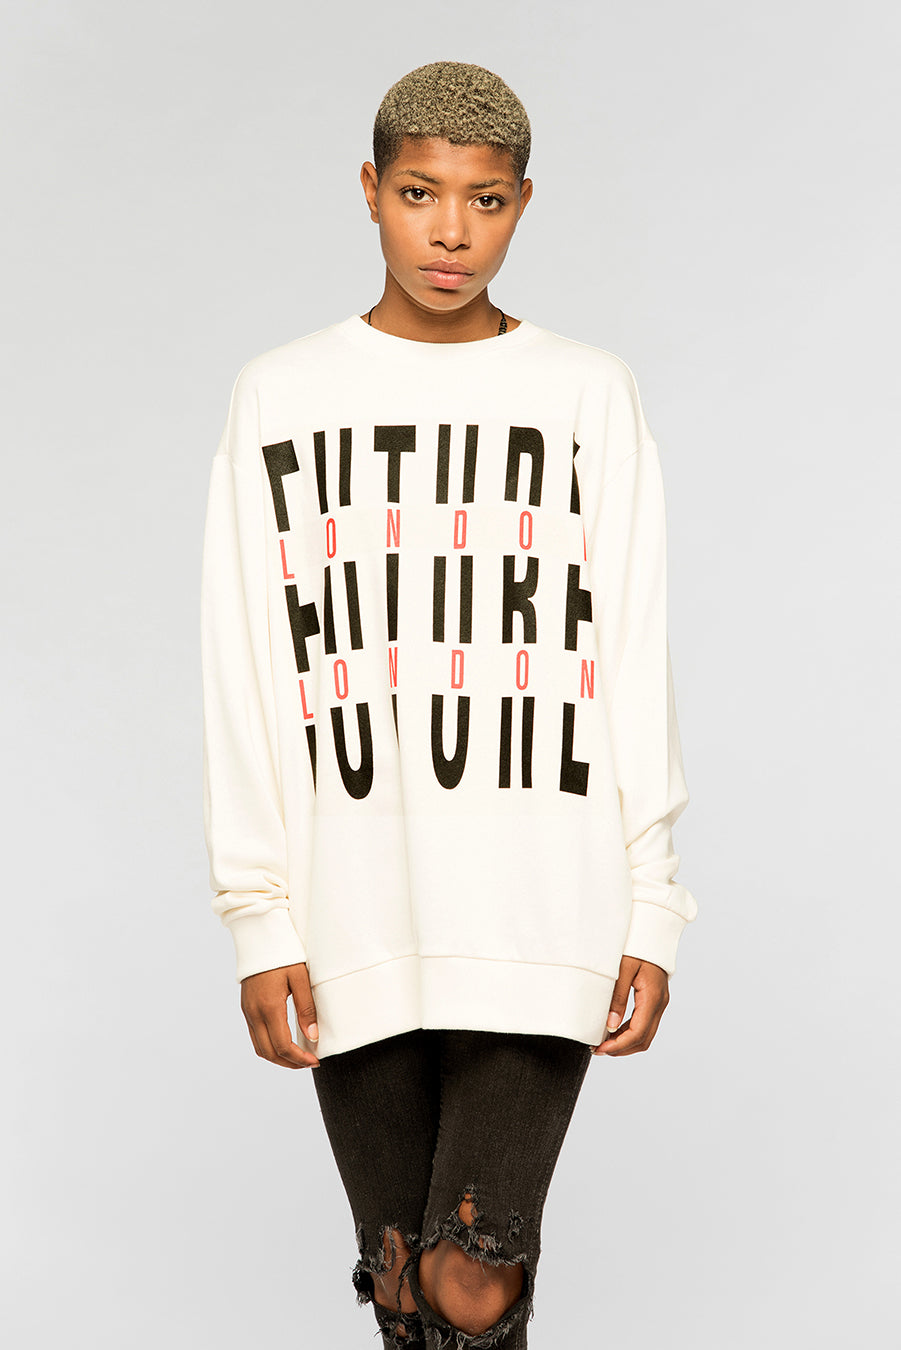 new_future_london_fracture_logo_sweatshirt_white_-1.jpg